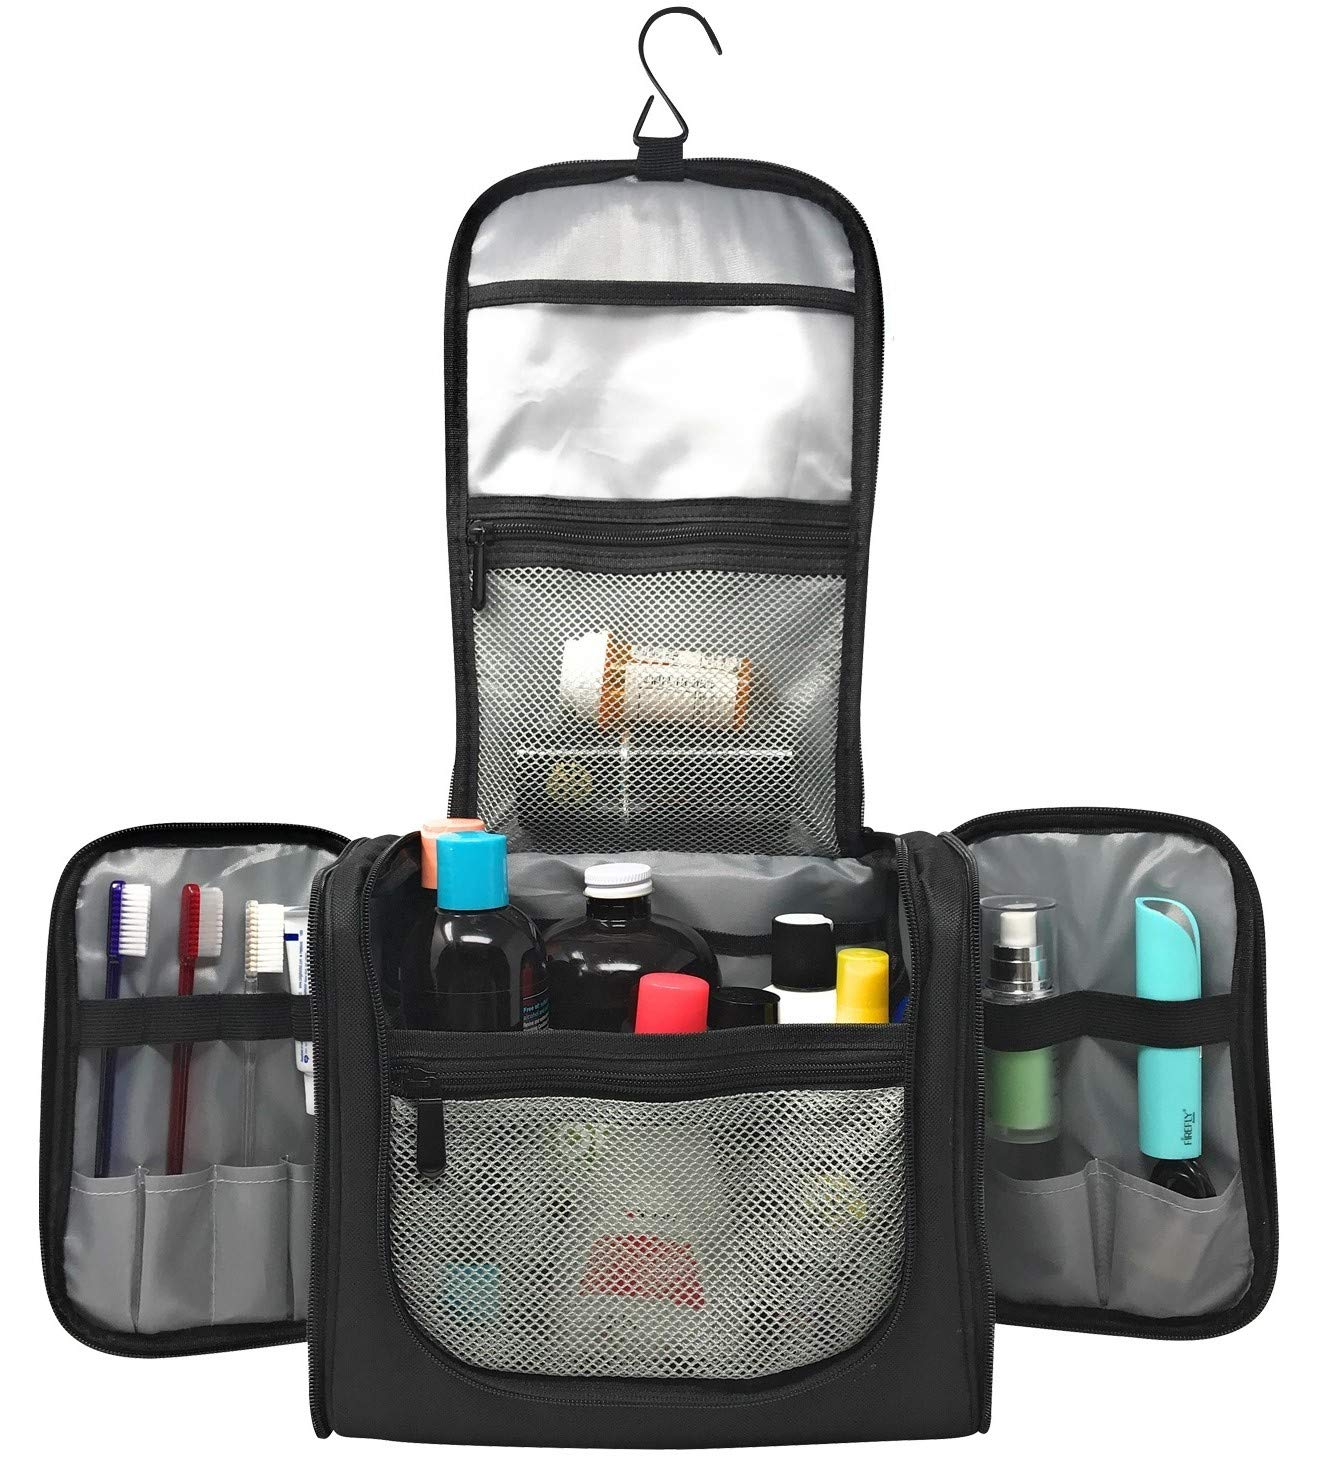 Large Capacity Hanging Toiletry Bag Water Resistant Machine Washable Organizer for Men and Women Spacious Compact Kit Strong Zippers, Sturdy Hook Handle 17 Compartments Travel and Home